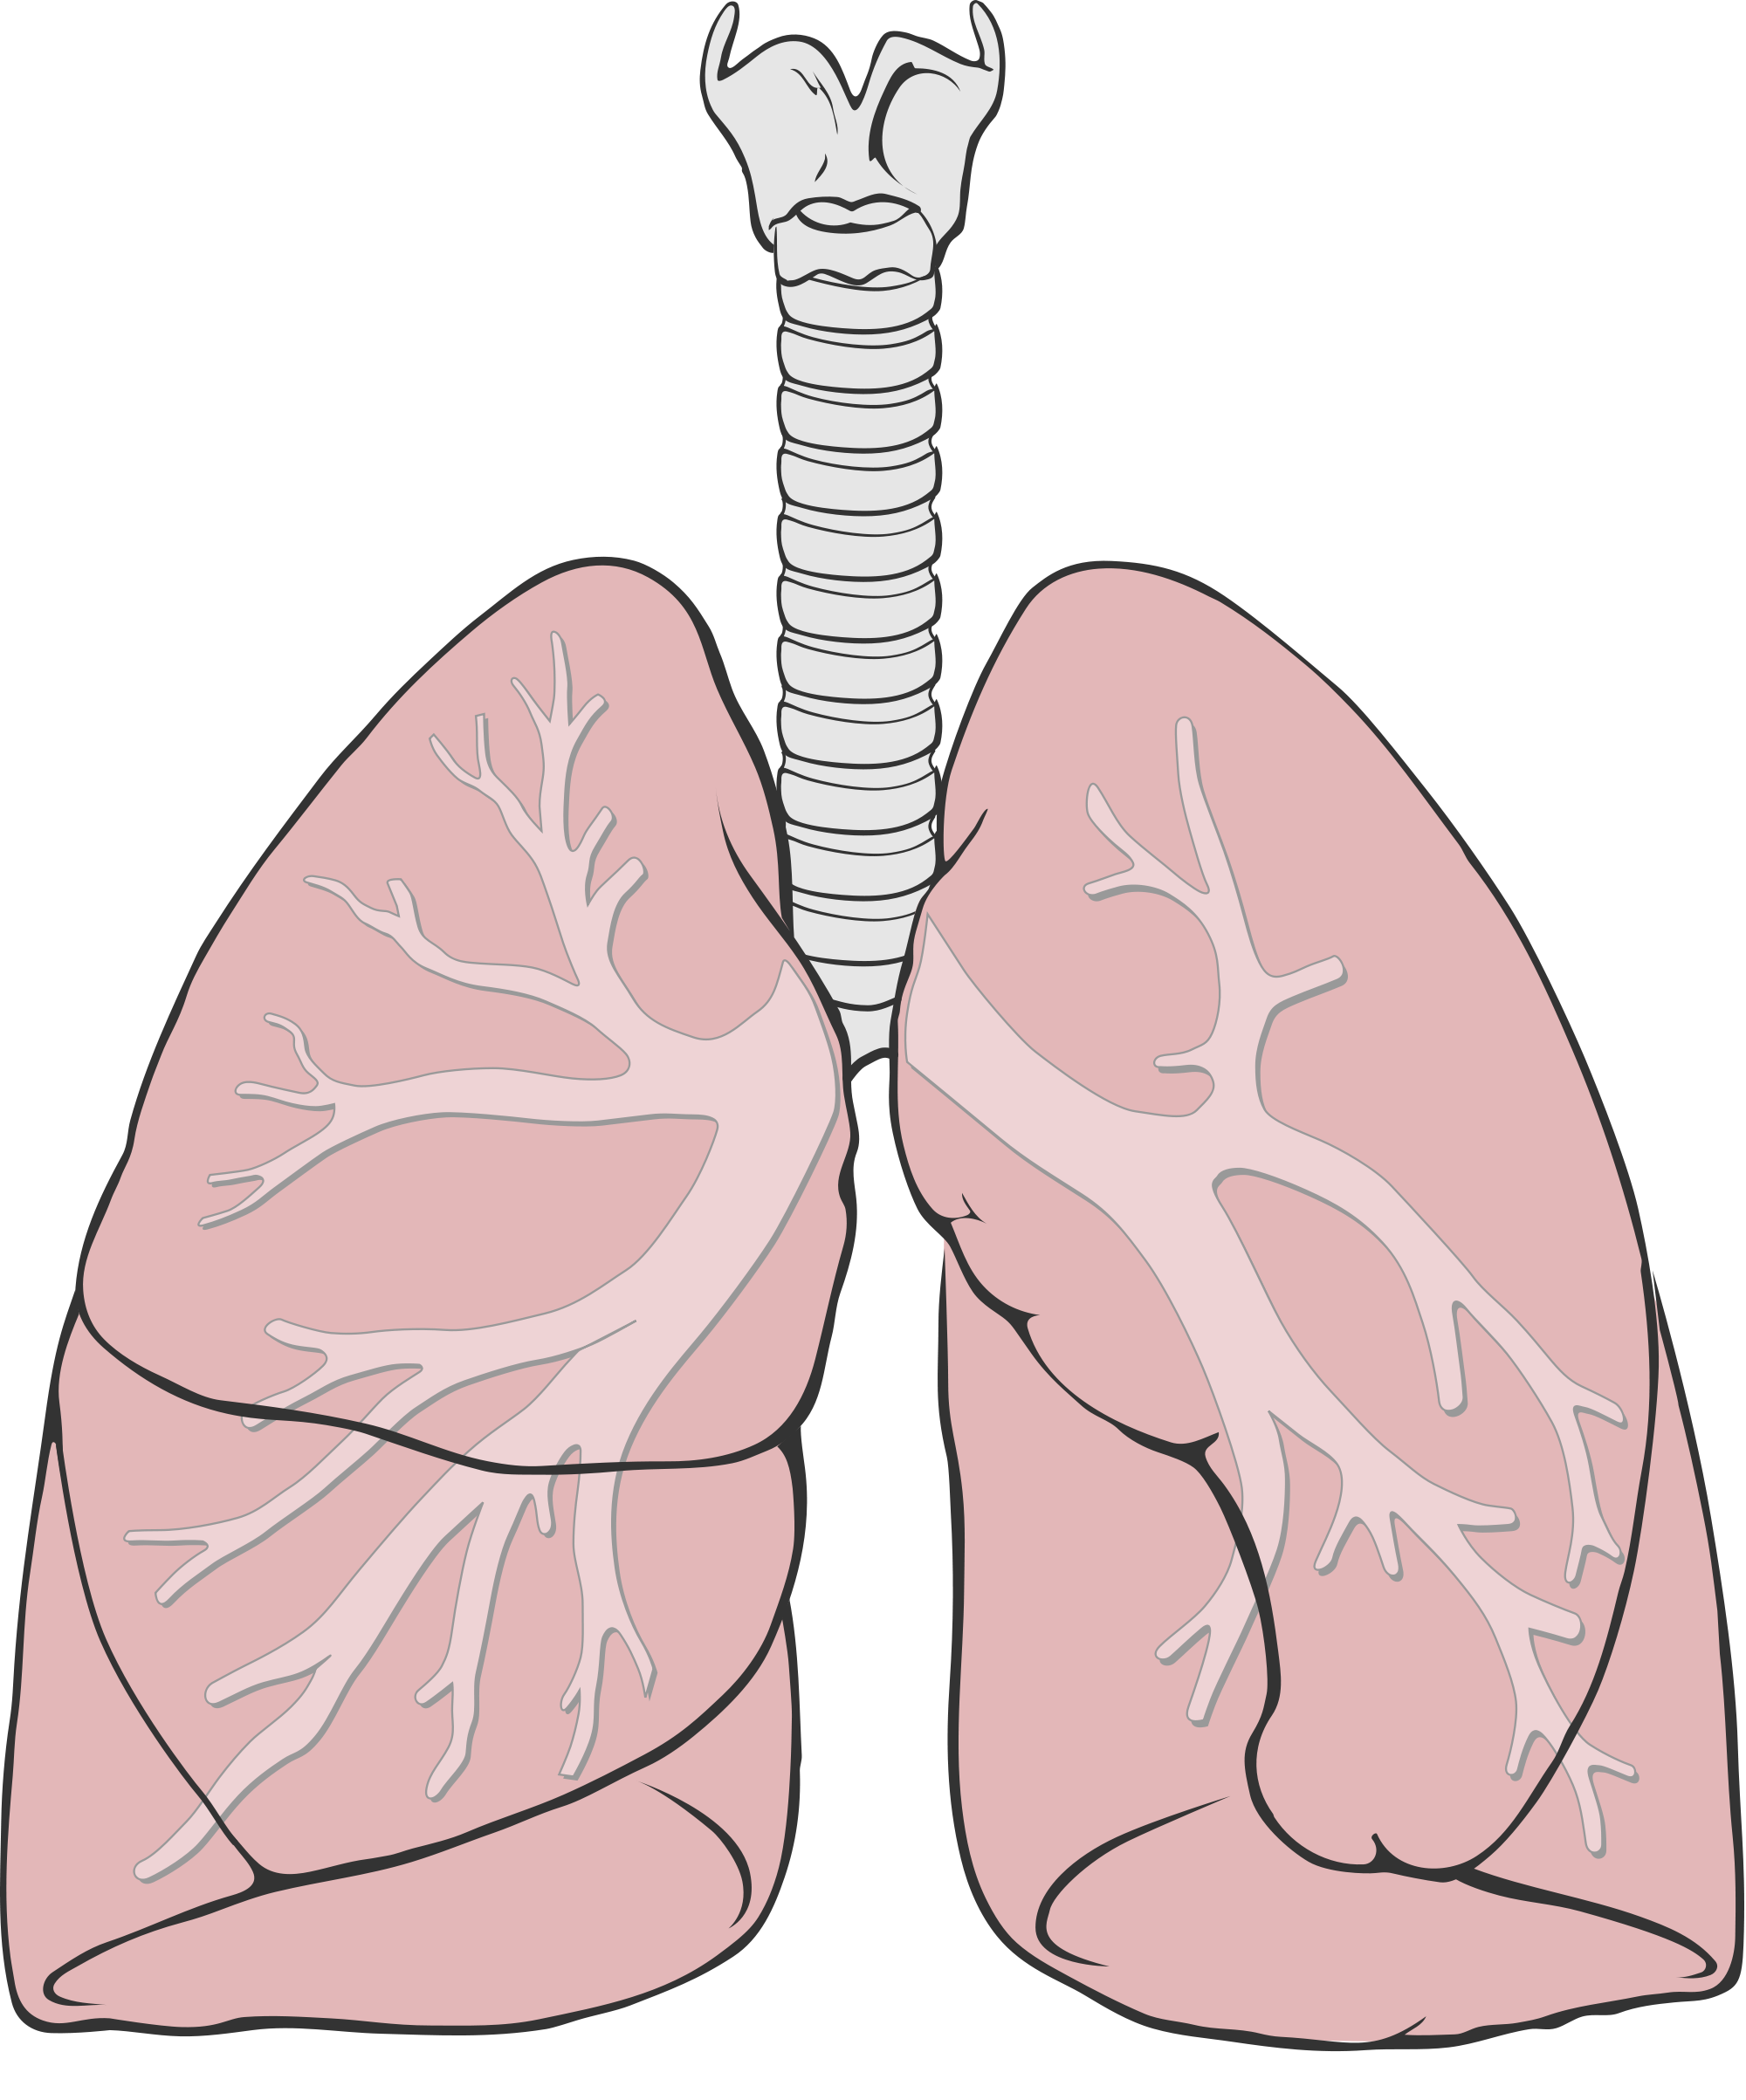 Nose clipart respiratory system. Sex and gender differences